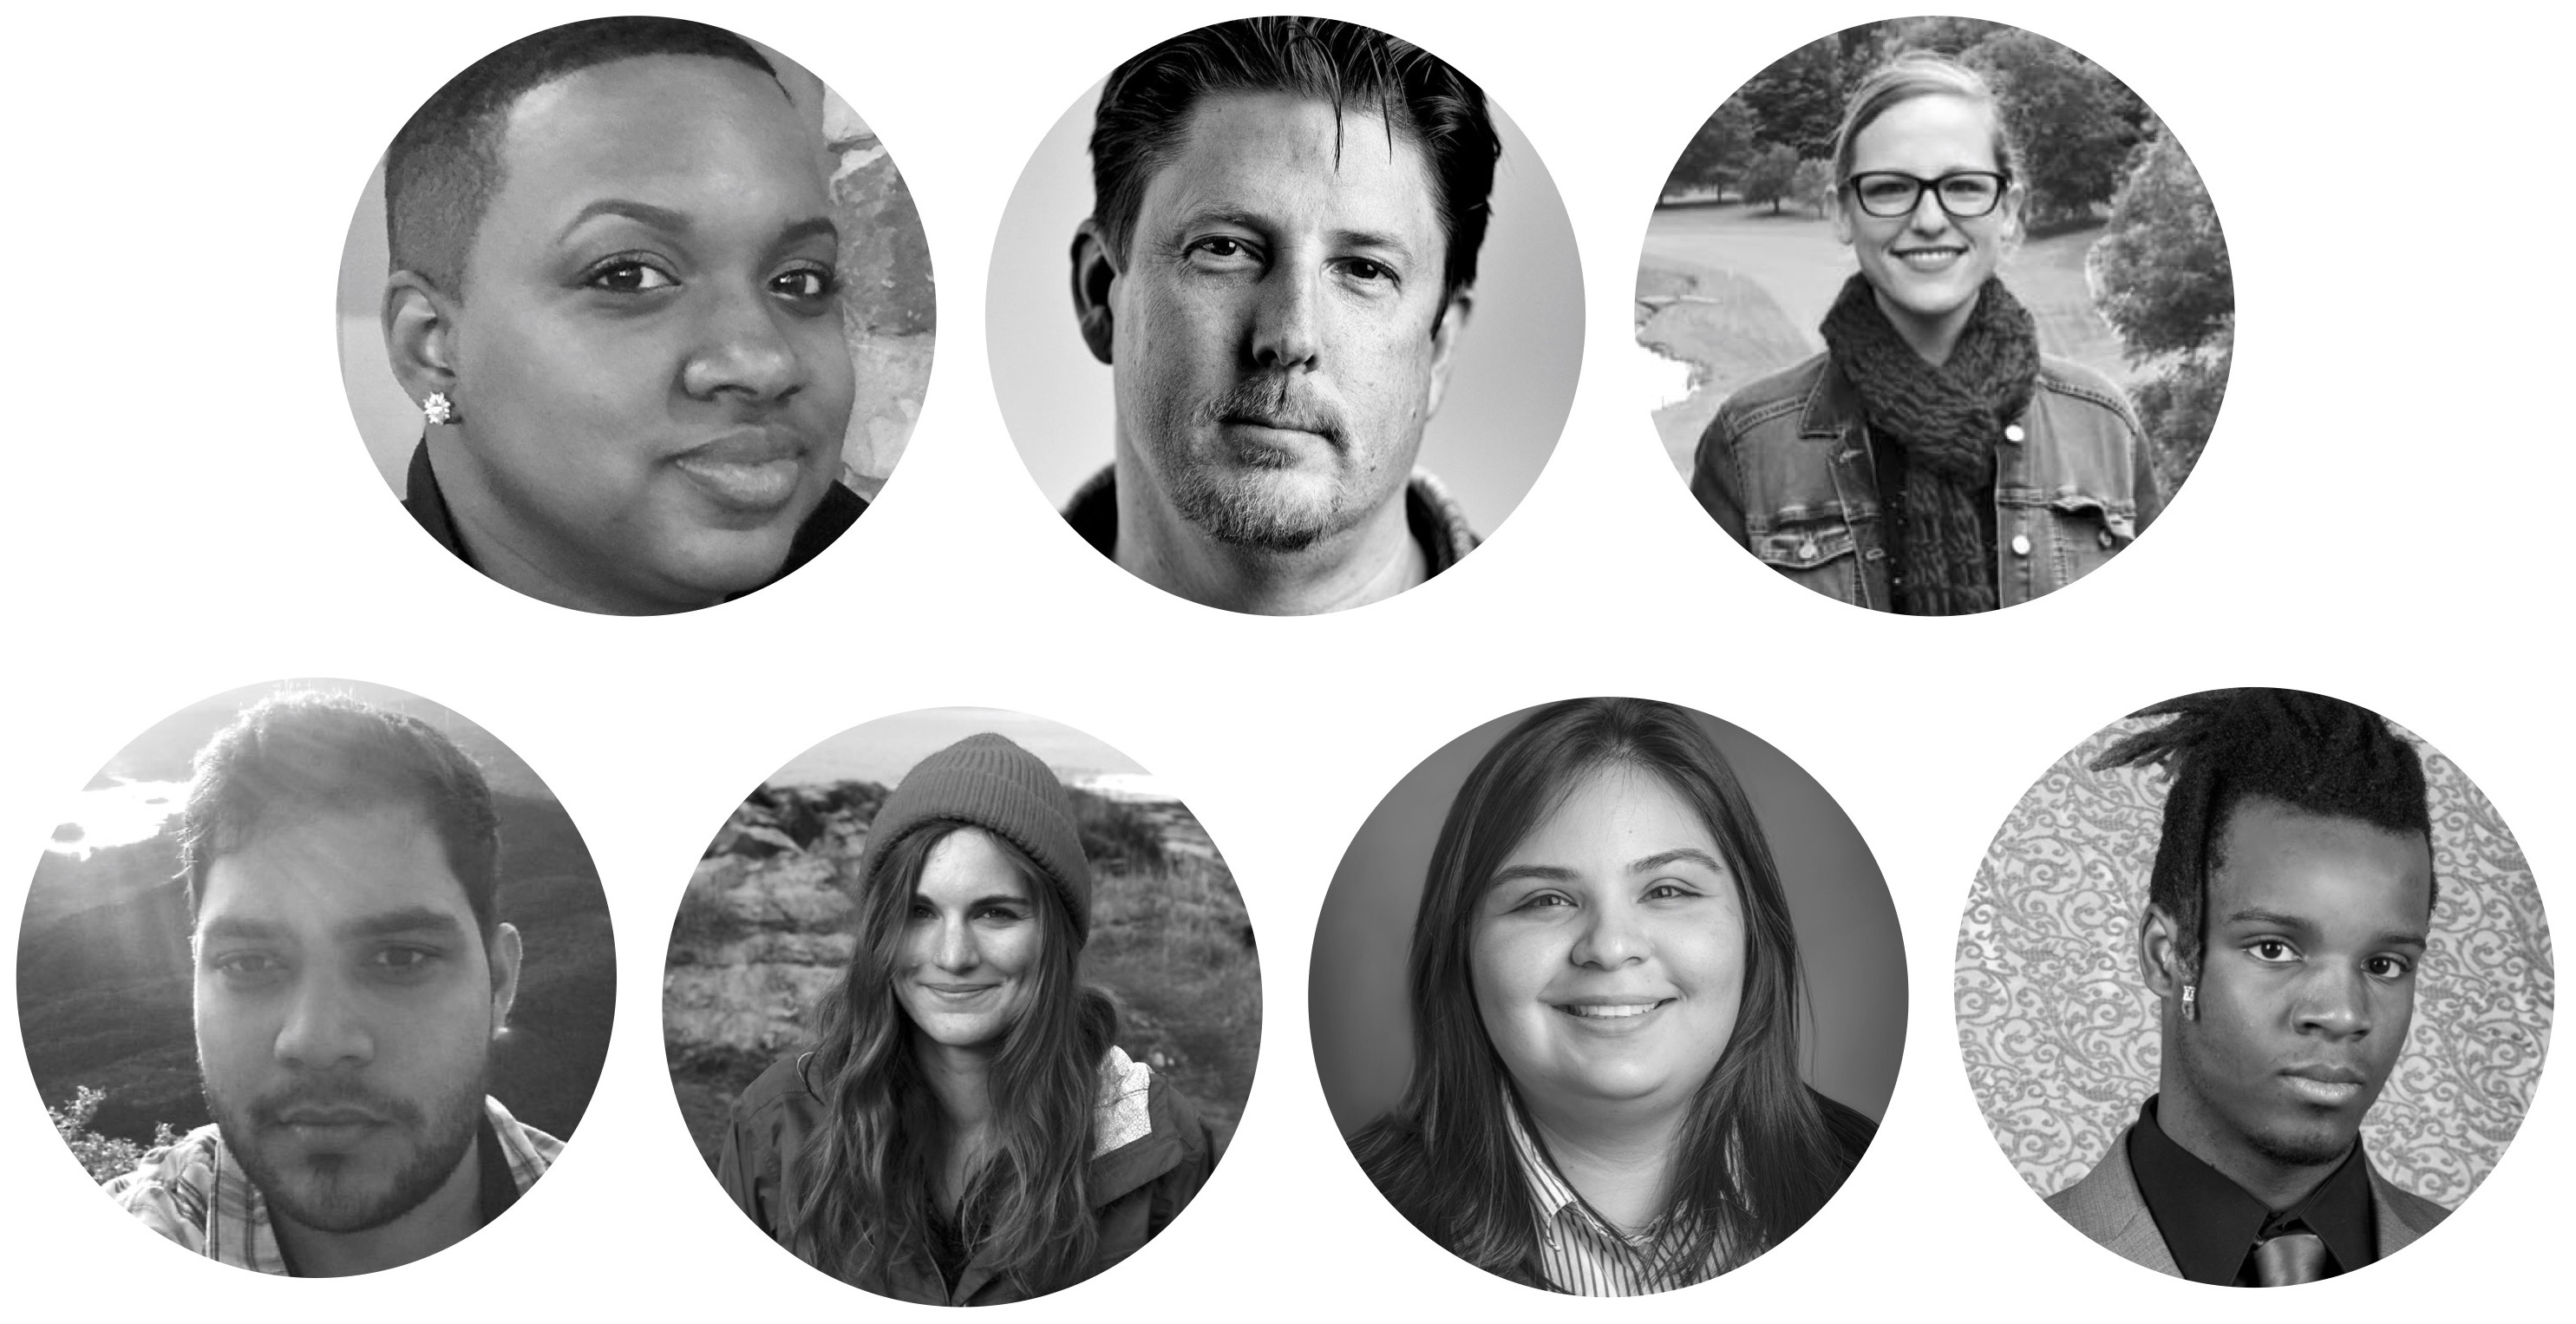 7 circles with headshots of users interviewed